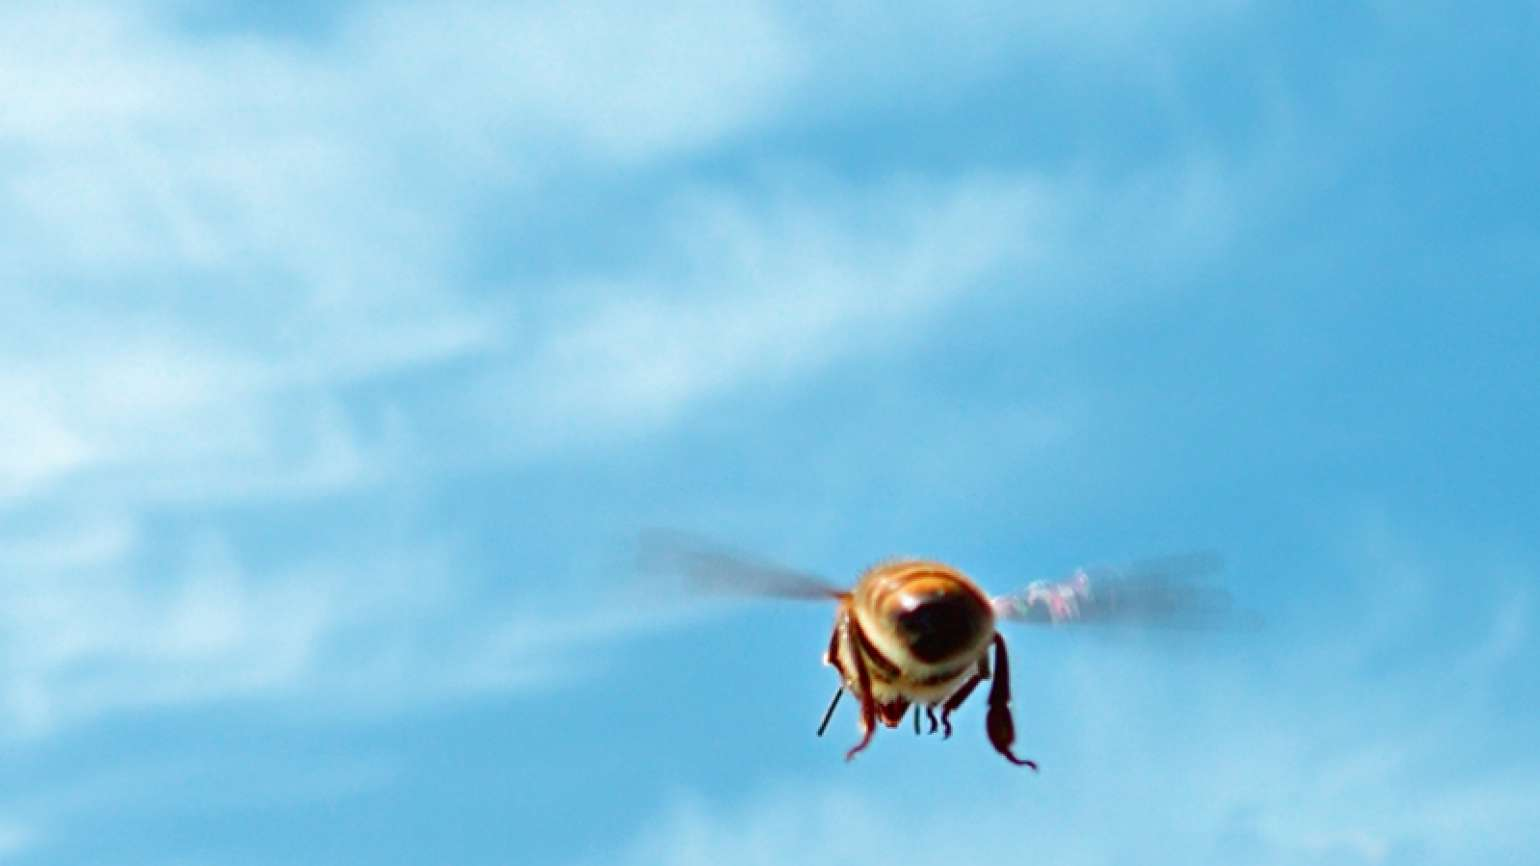 A flying bee against a blue sky streaked with wispy clouds